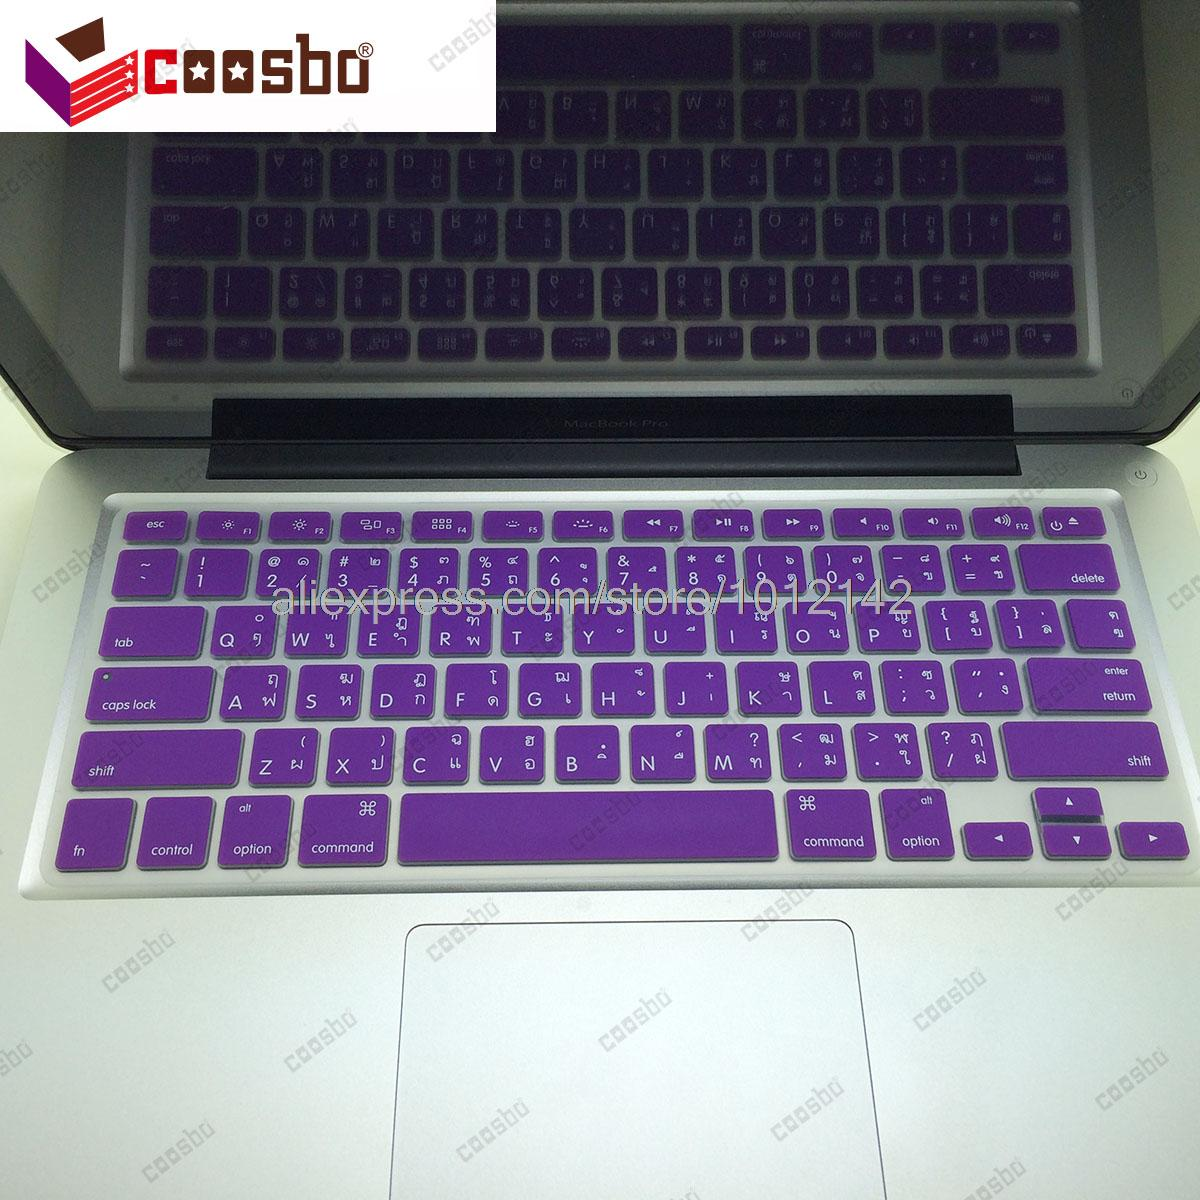 10pcs Wholesale Thailand Thai Colors Silicone Keyboard Skin Protective Cover for Mac Macbook Air Pro Retina / G6 13 15 17 inch(China (Mainland))